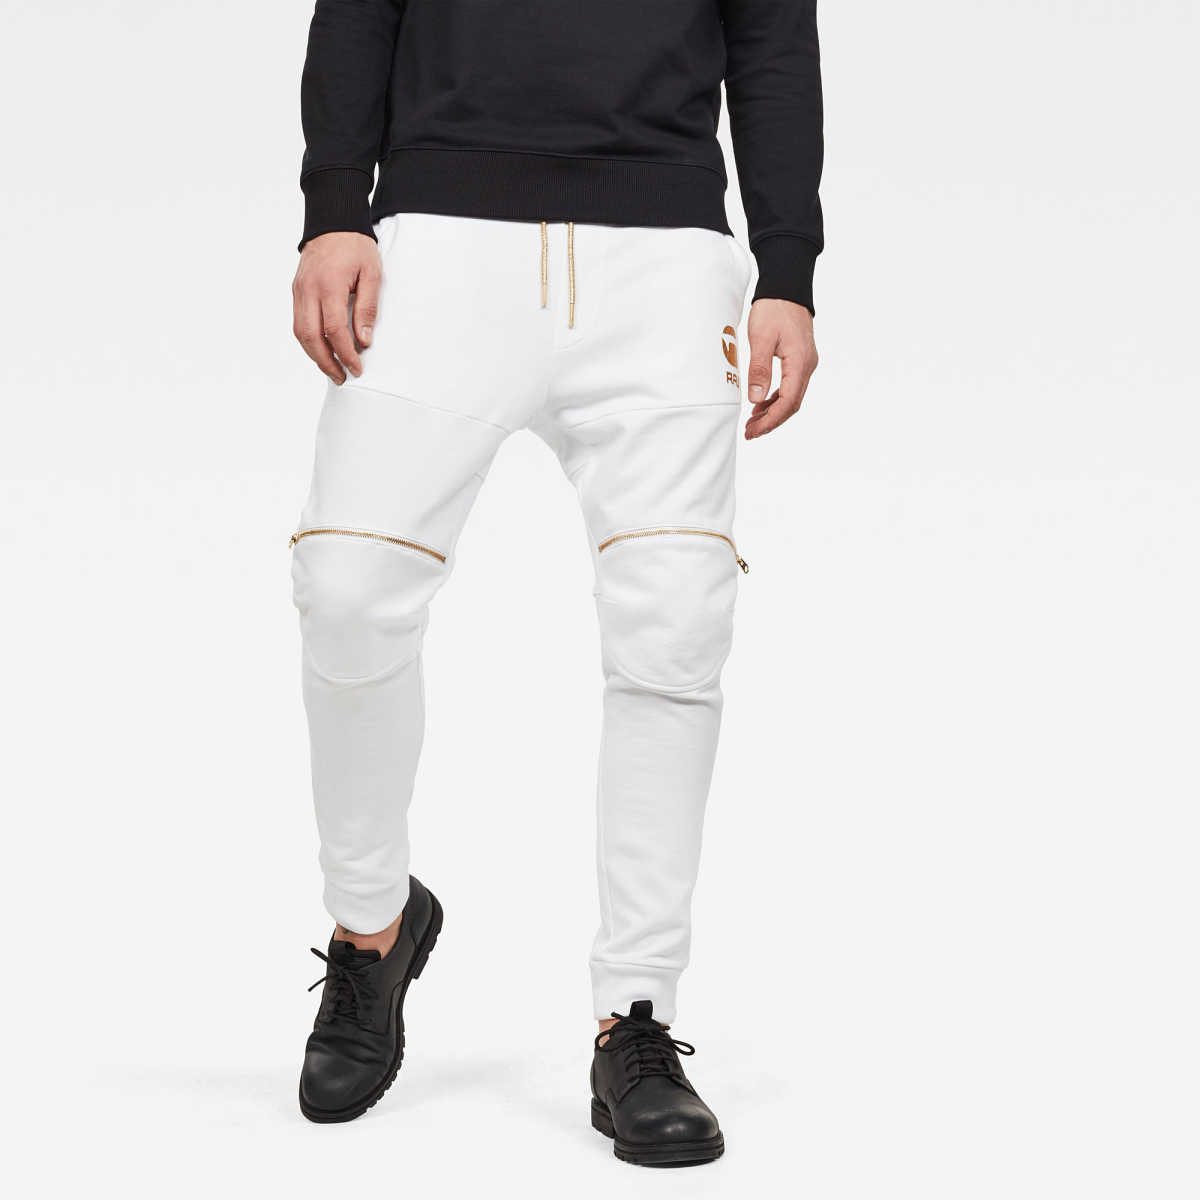 G-Star Male 5620 Zip Knee Sweatpants Pants Tapered White USA - GOOFASH - Mens TROUSERS